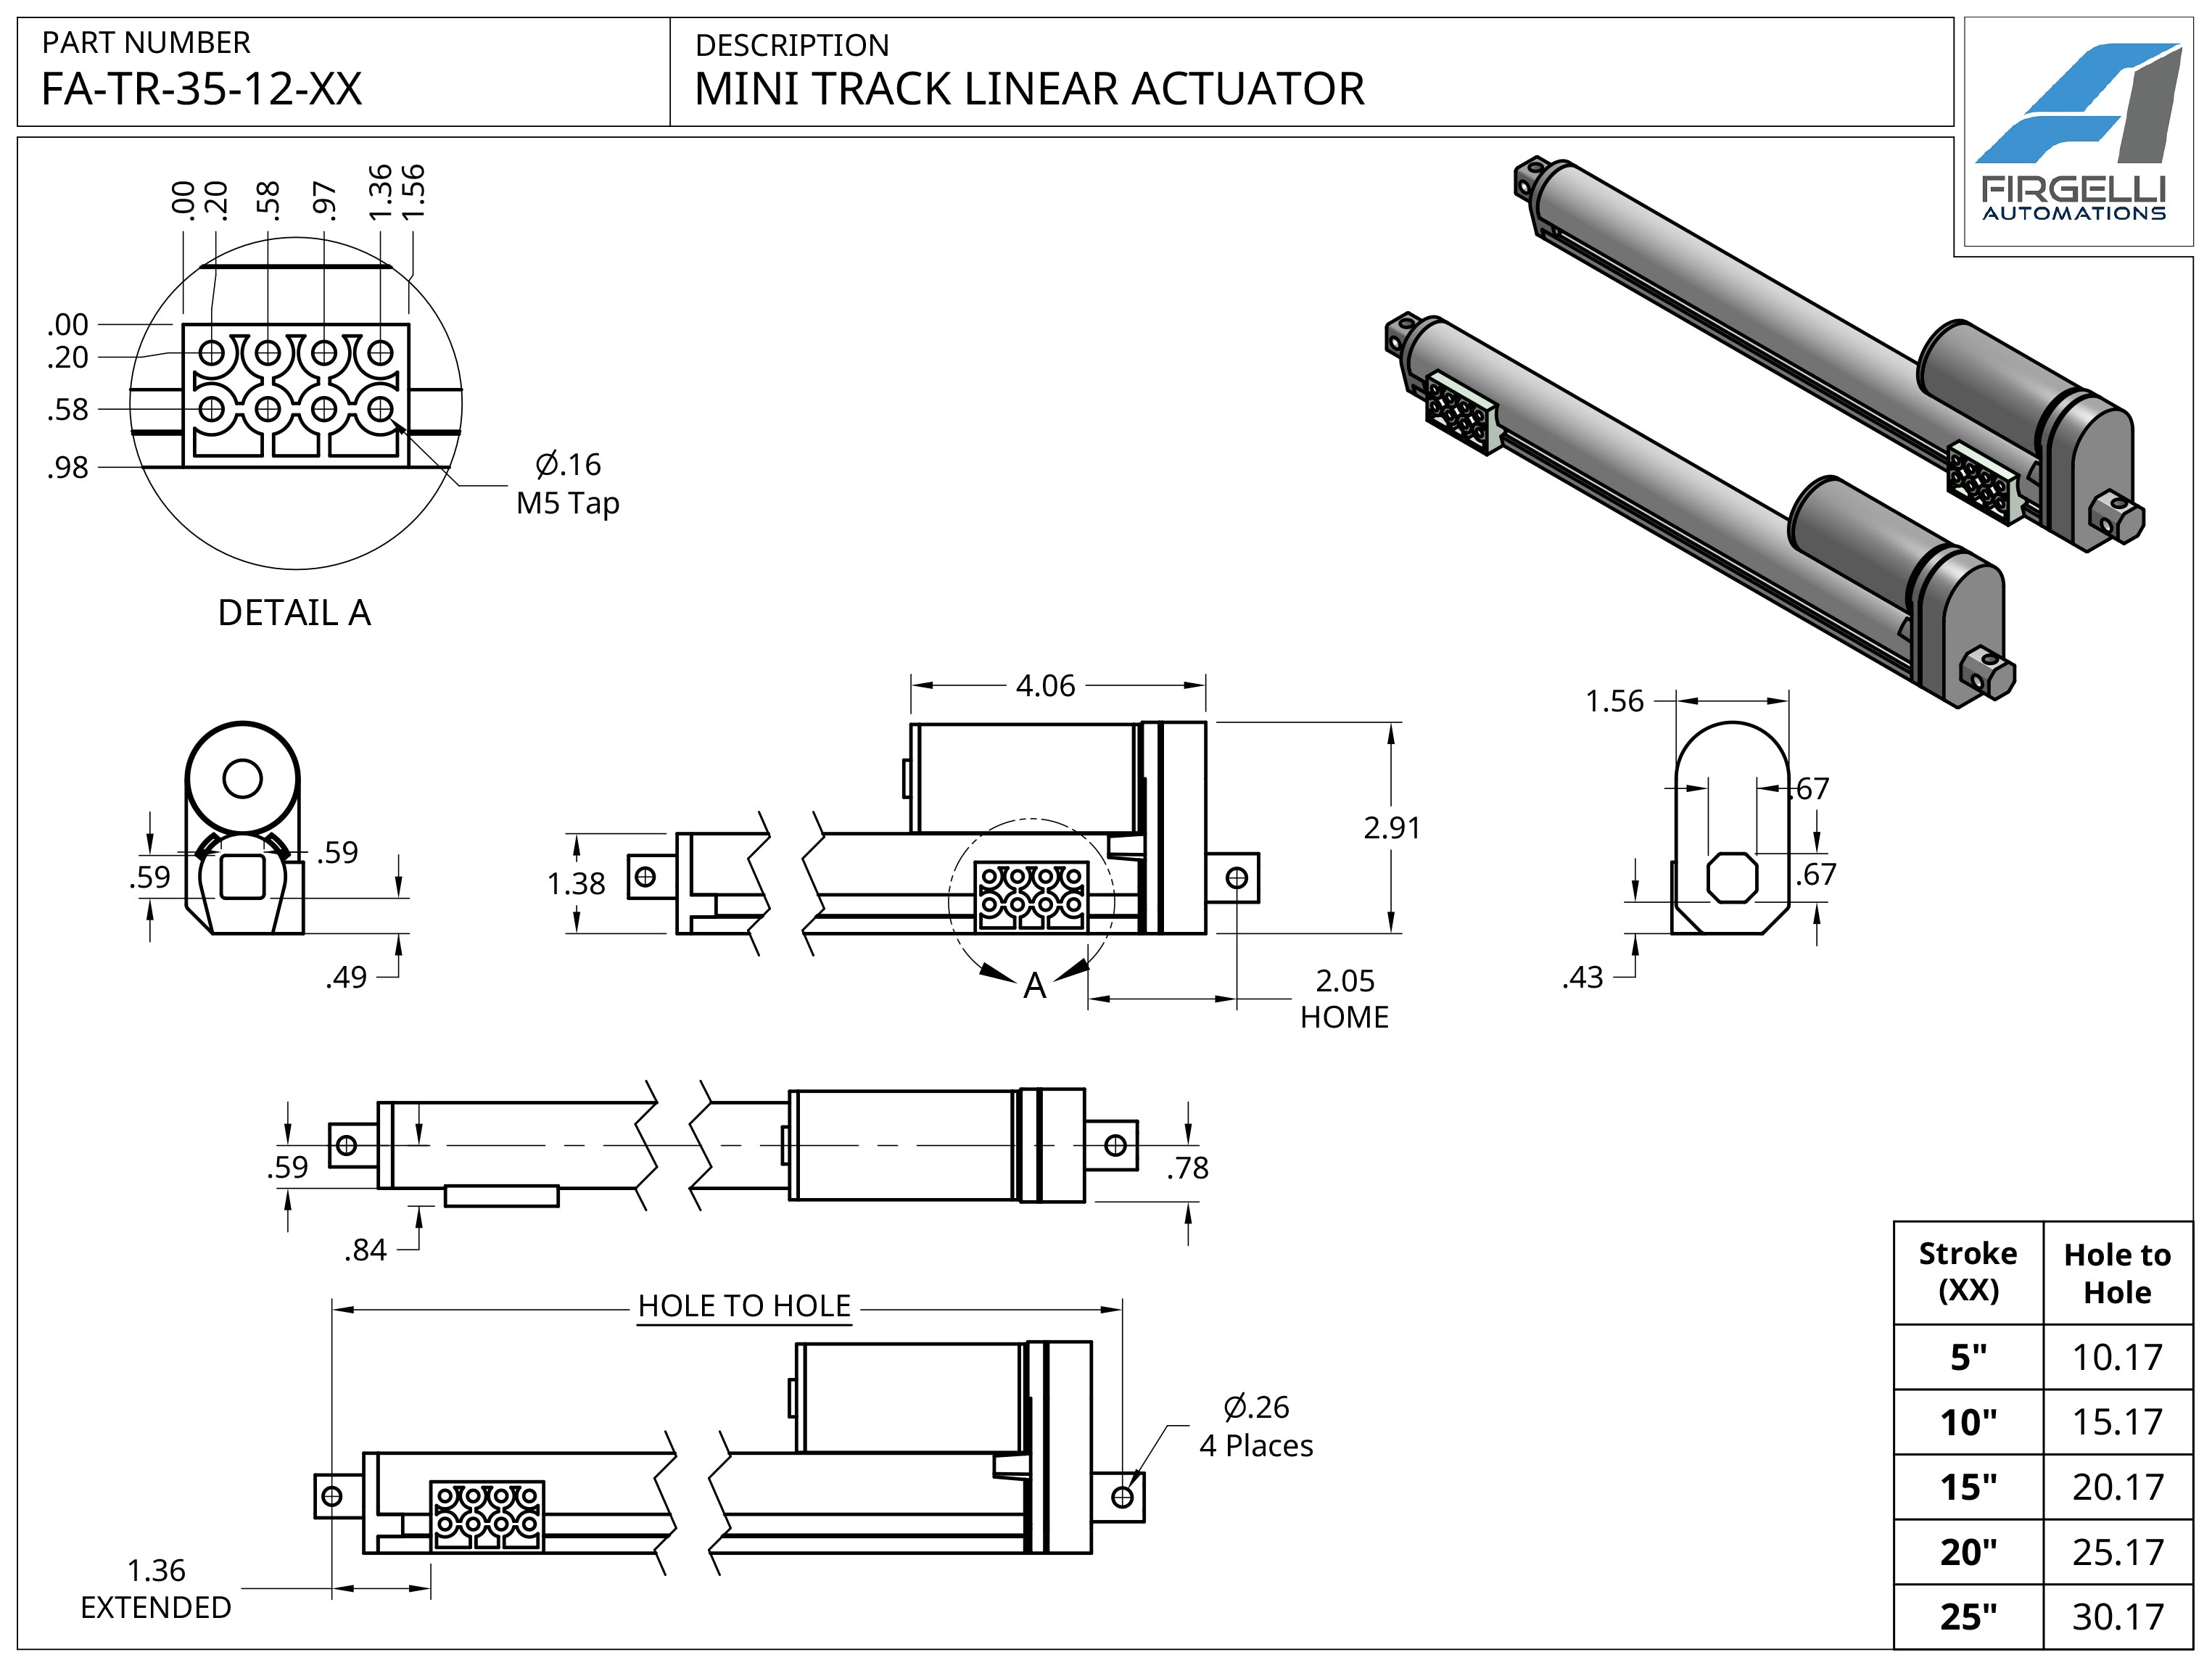 Mini Track Actuator Technical Drawing